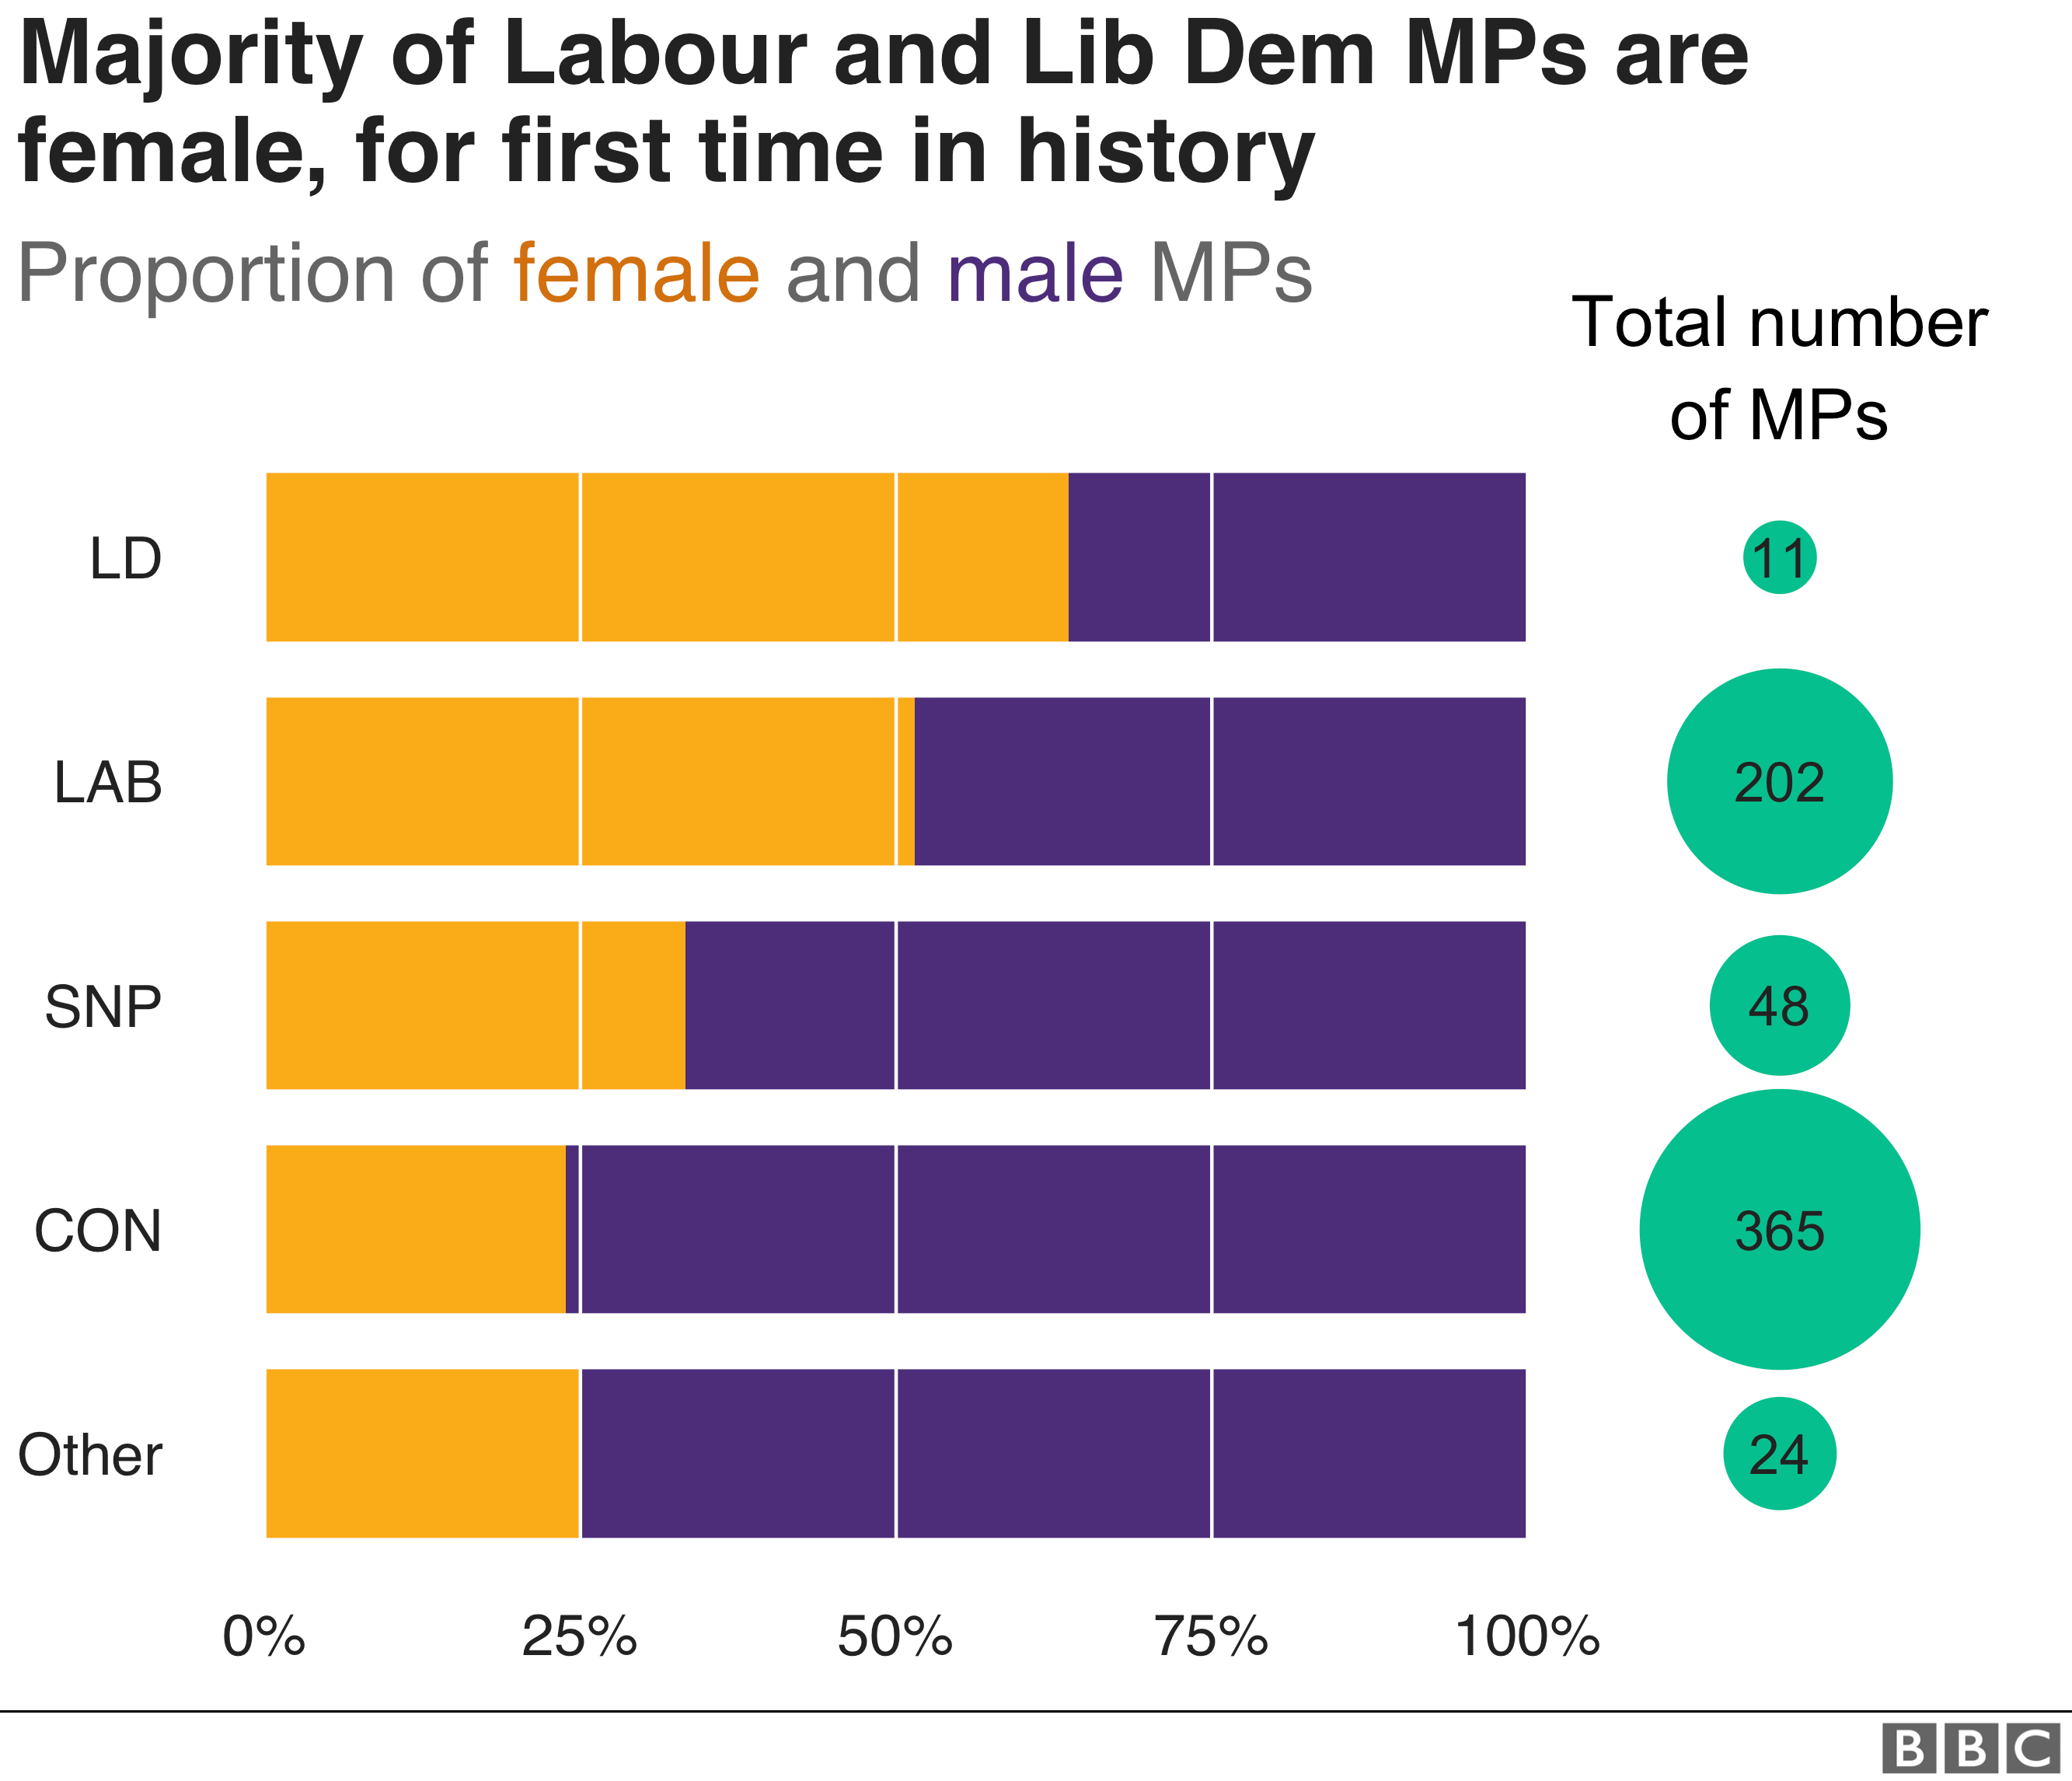 Proportion of female MPs by party